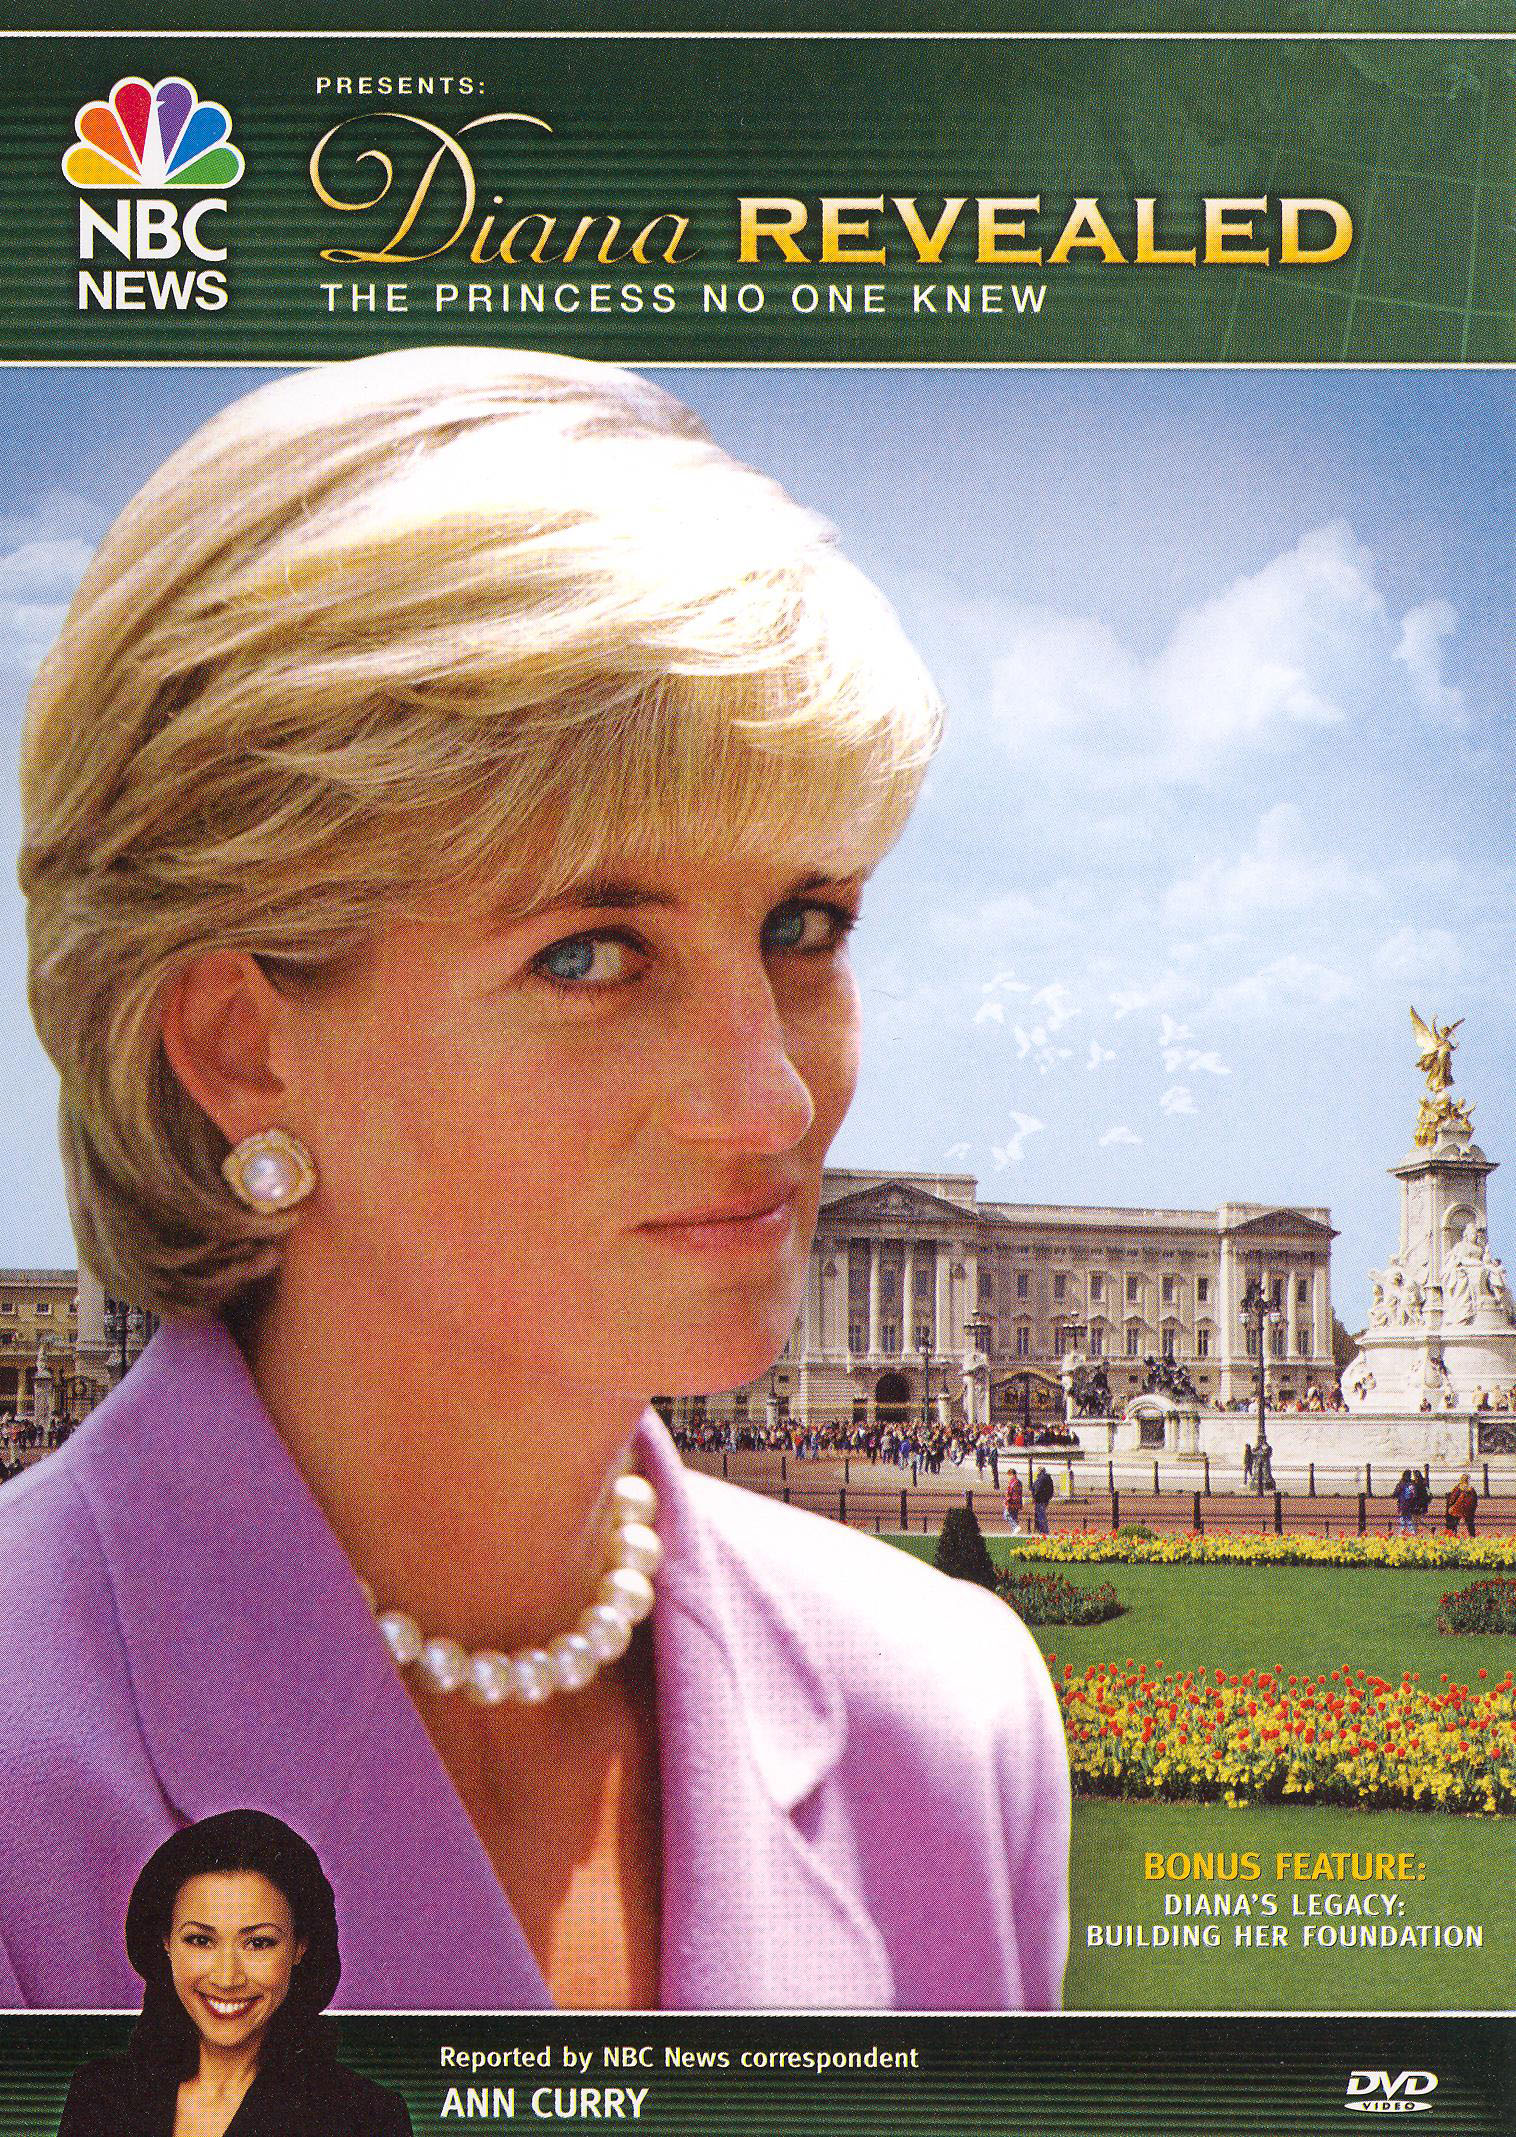 NBC News Presents Diana Revealed: The Princess No One Knew